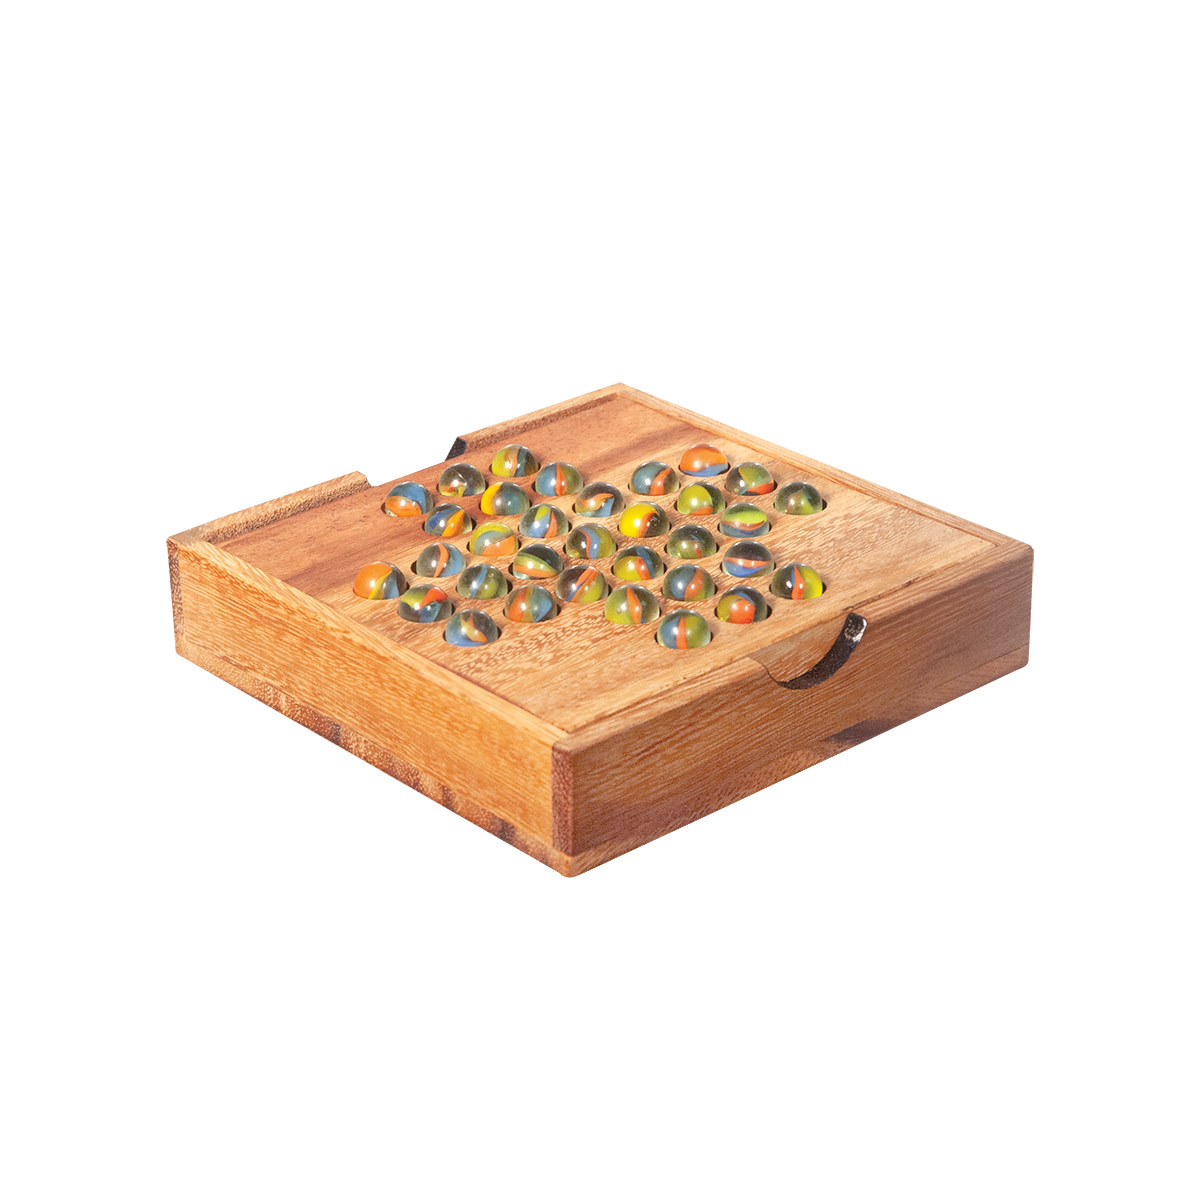 Peg Solitaire Game with Wooden Marbles